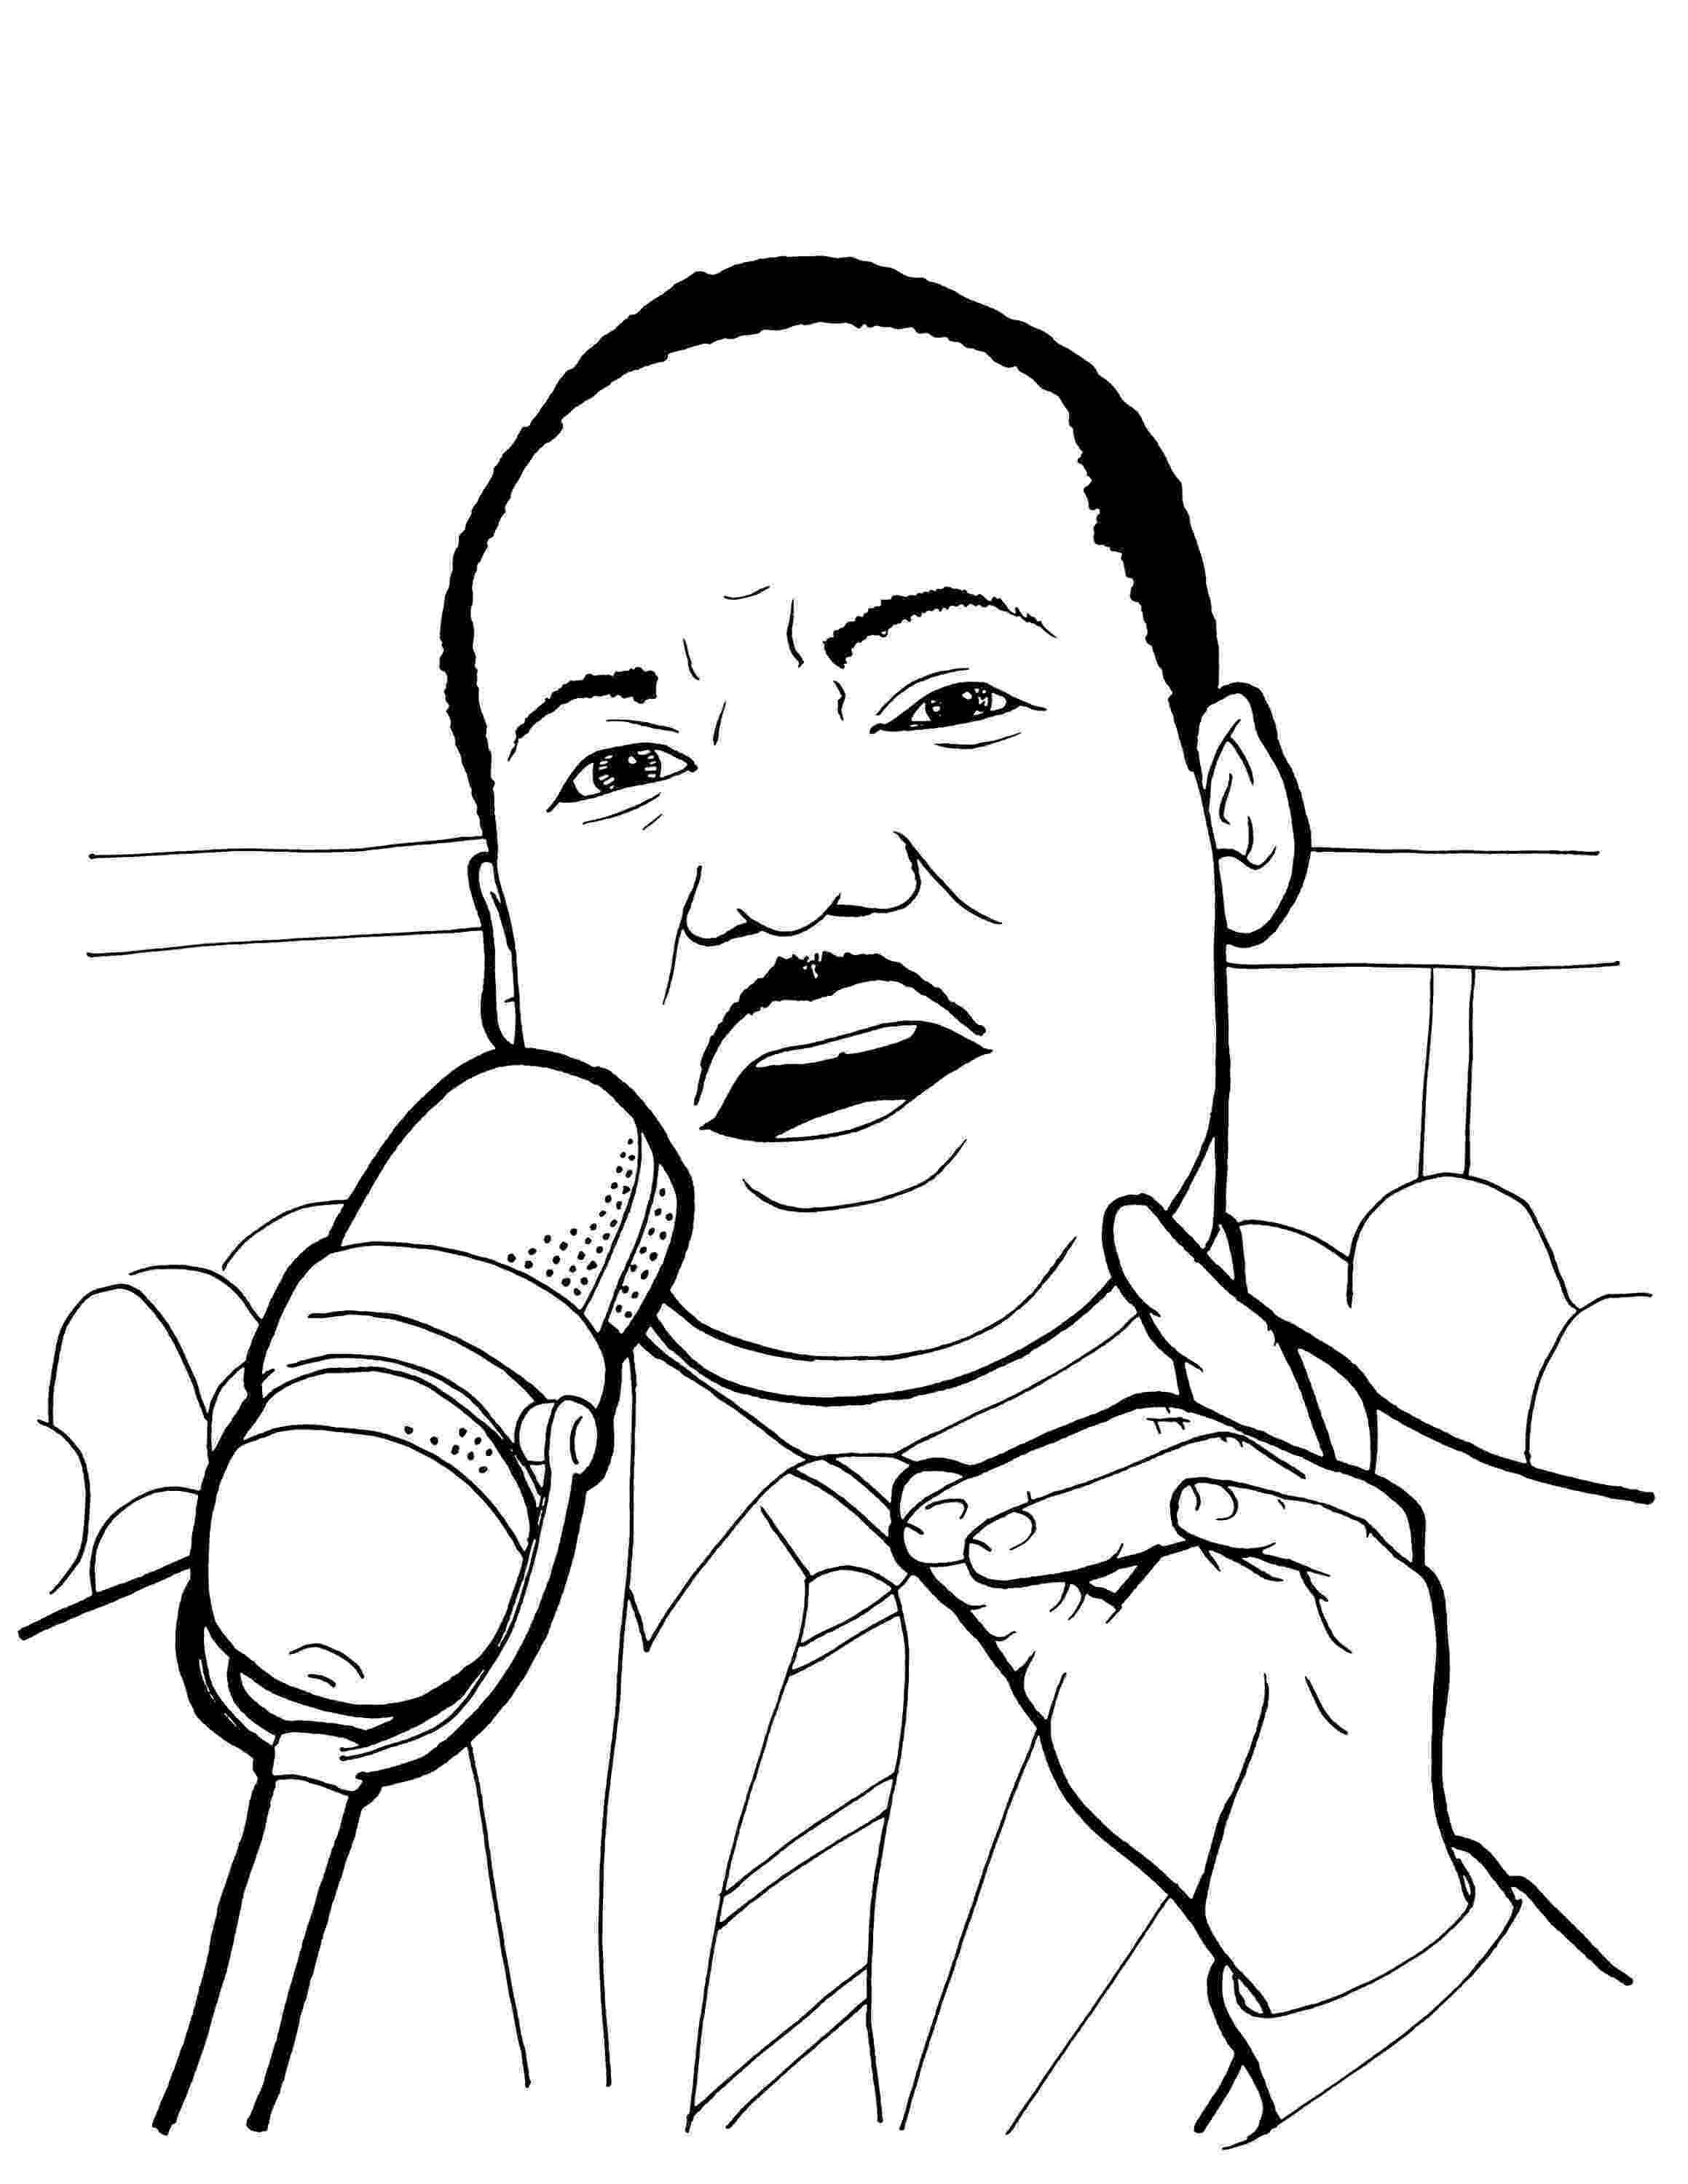 martin luther king jr coloring page new coloring pages your blog description jr coloring martin king page luther